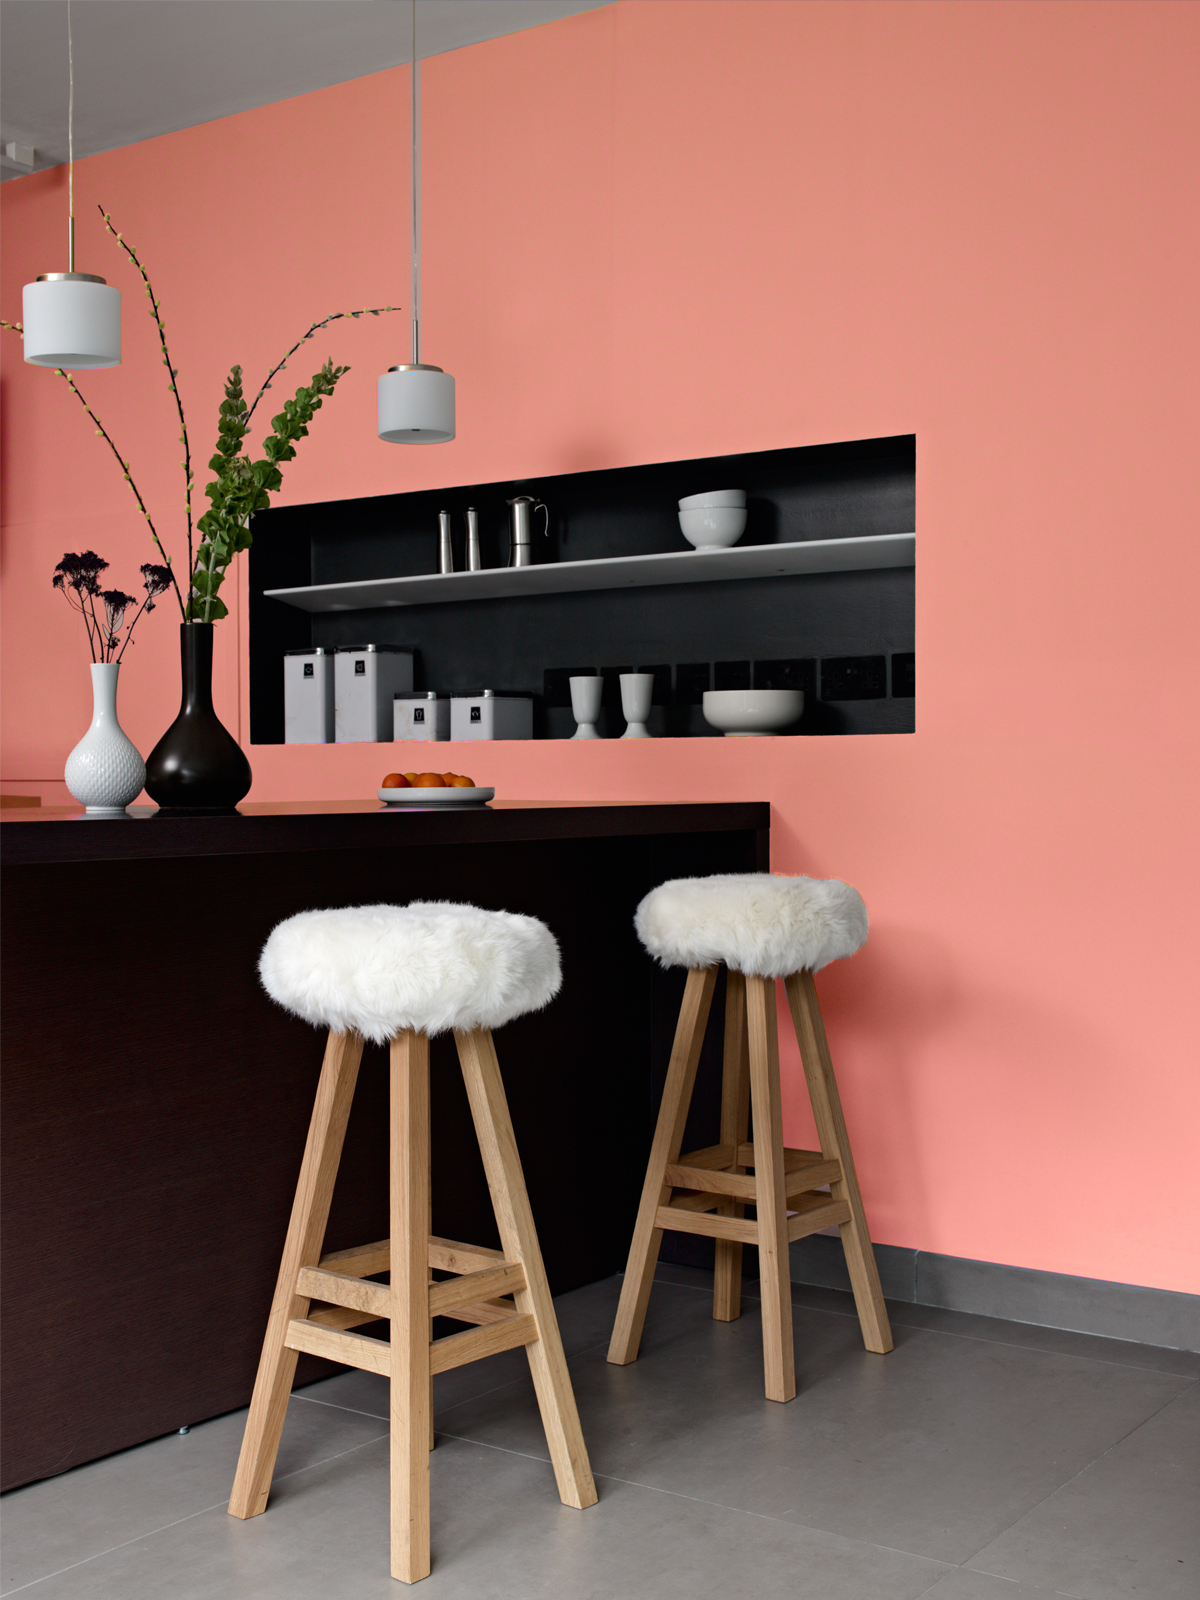 For immediate release dulux announces top colour picks - Couleur peinture cuisine moderne ...